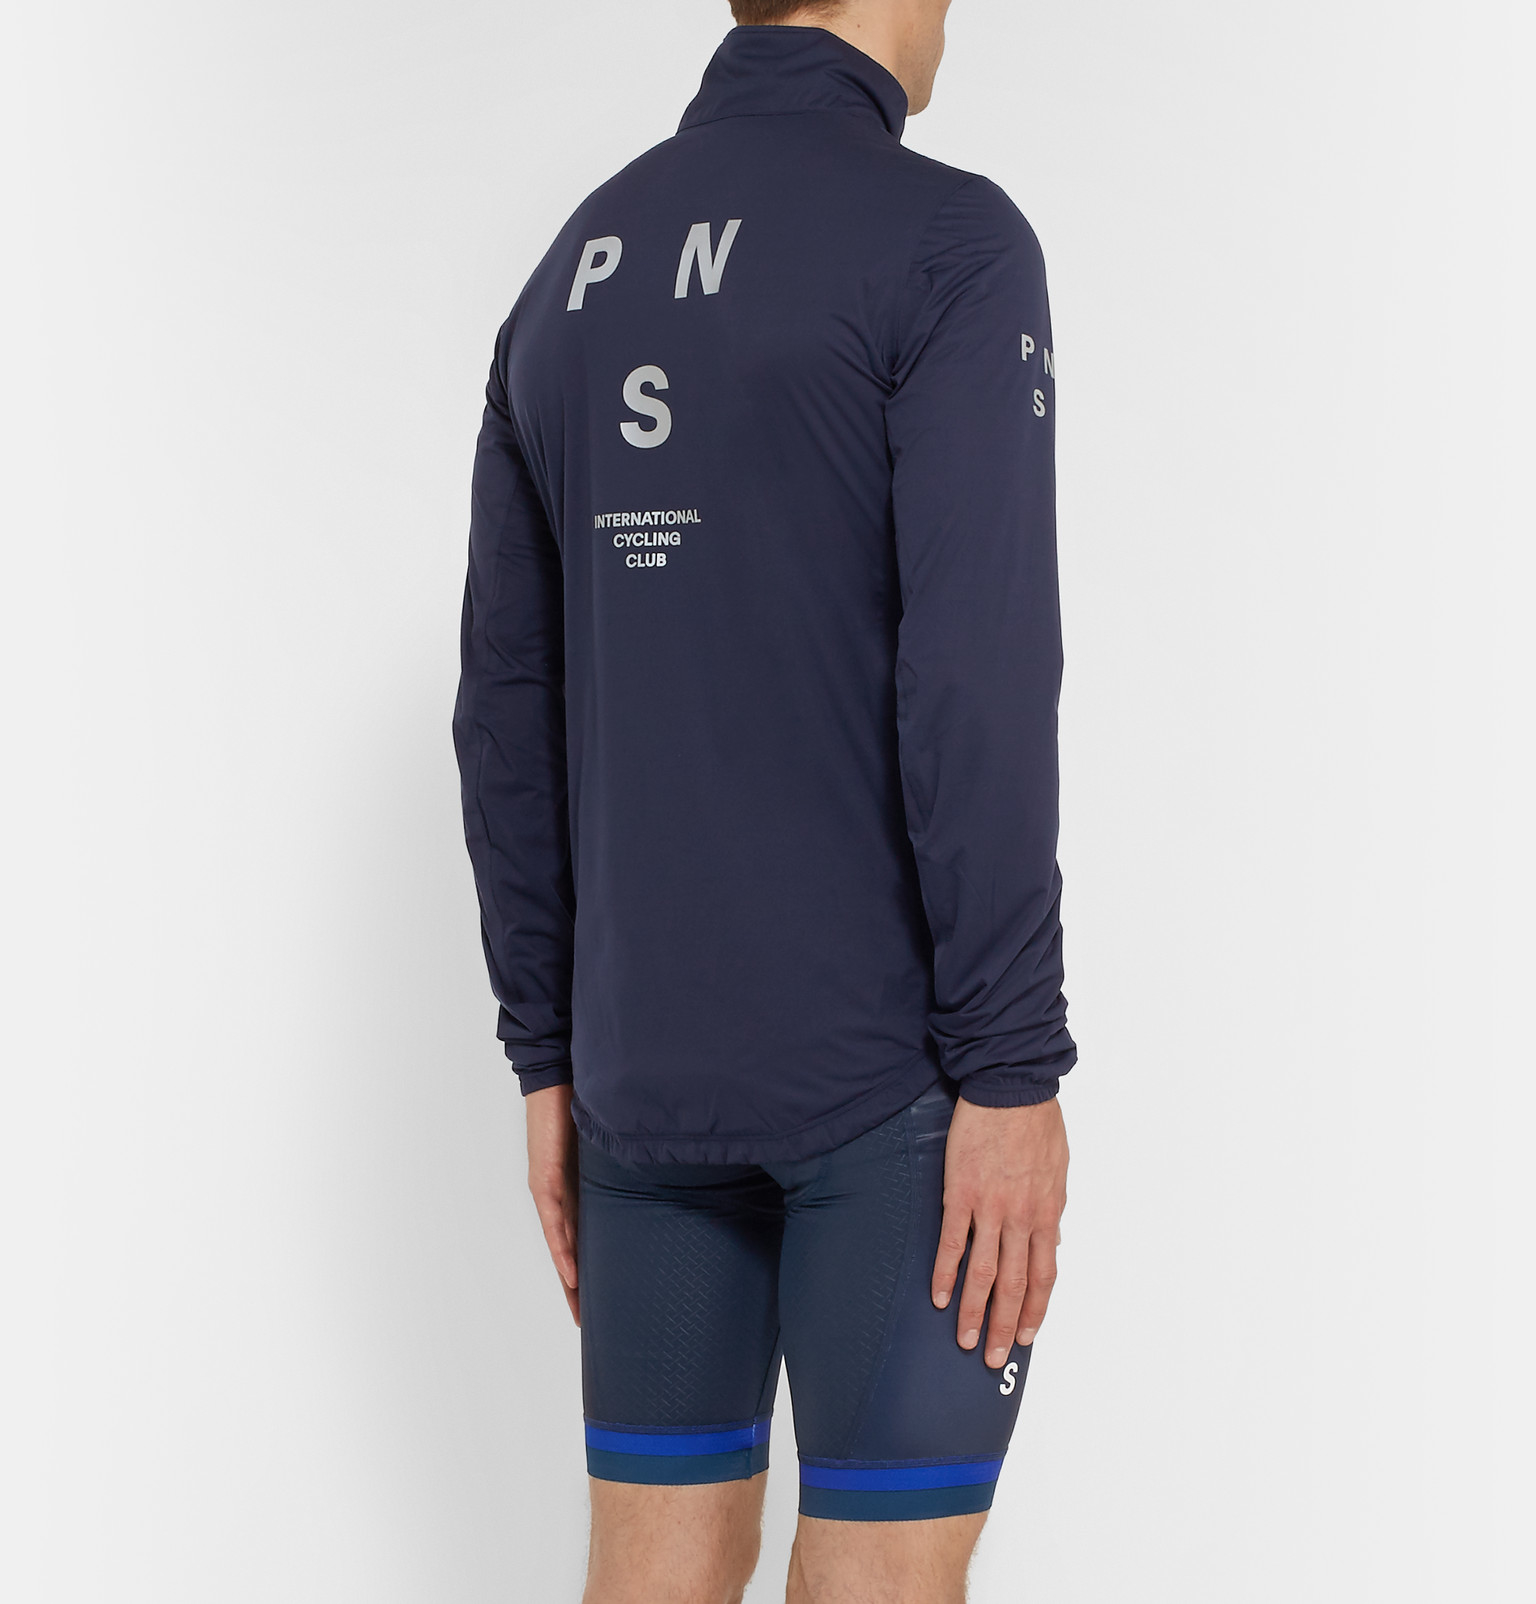 Pas Normal Studios Synthetic Water-resistant Cycling Jacket in Navy (Blue) for Men